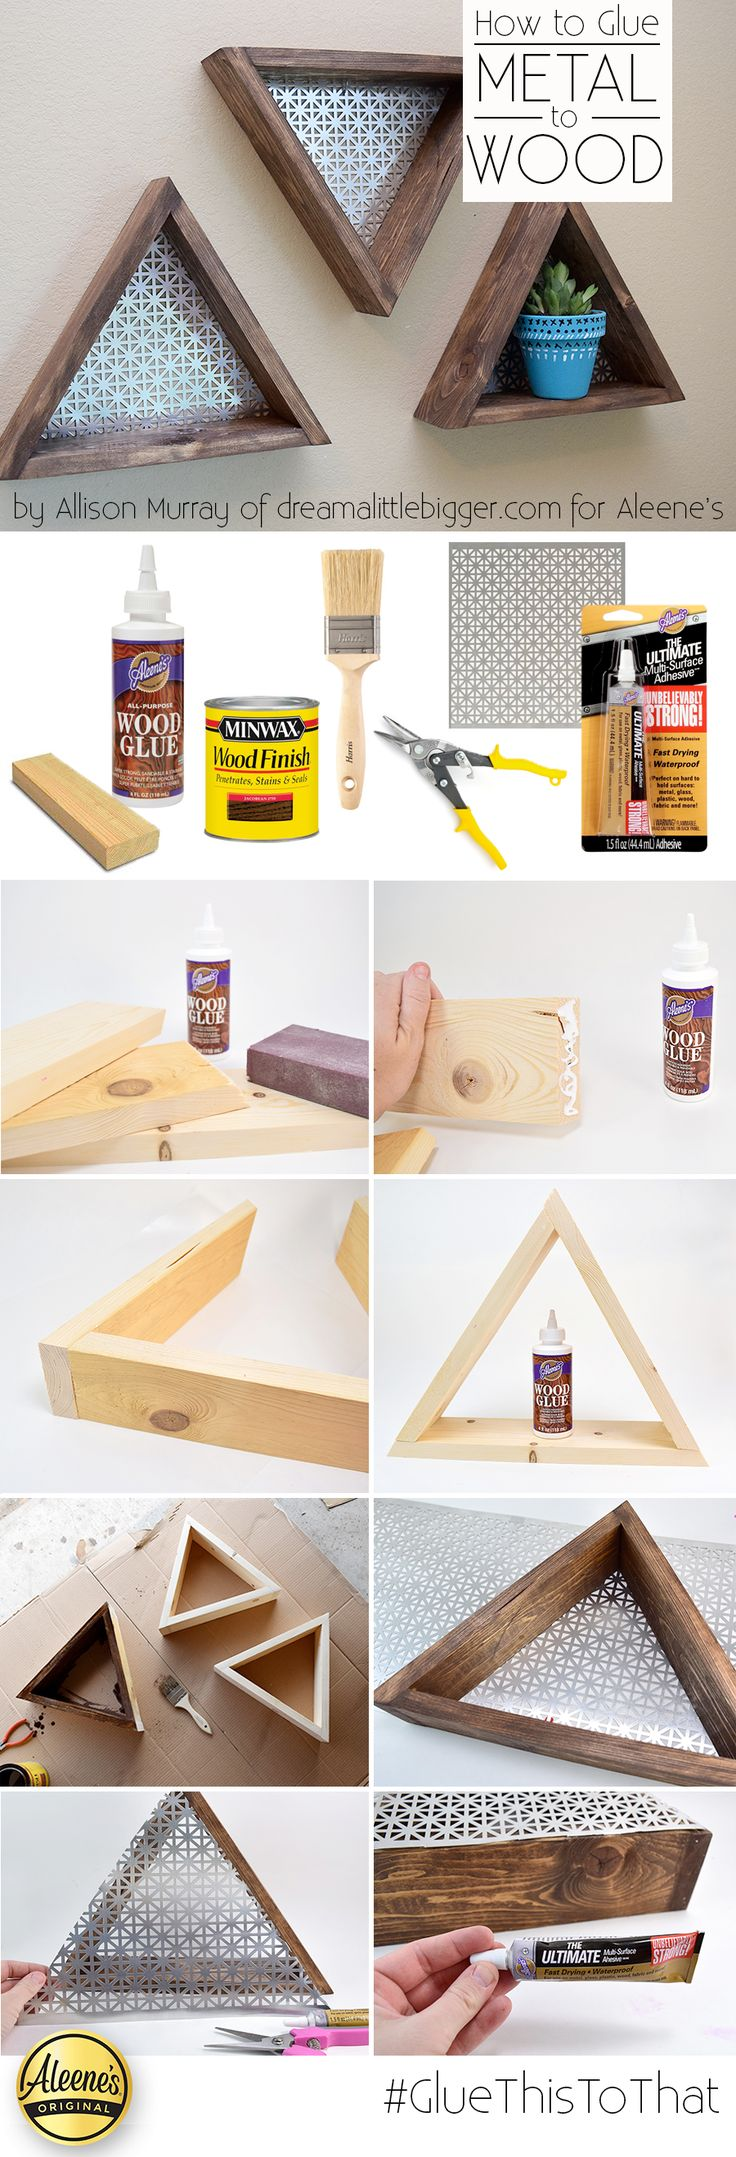 Make this cool DIY triangle shelves with @allisongm of the Dream a Little Bigger blog using Aleene's Wood Glue and Aleene's the Ultimate Adhesive!